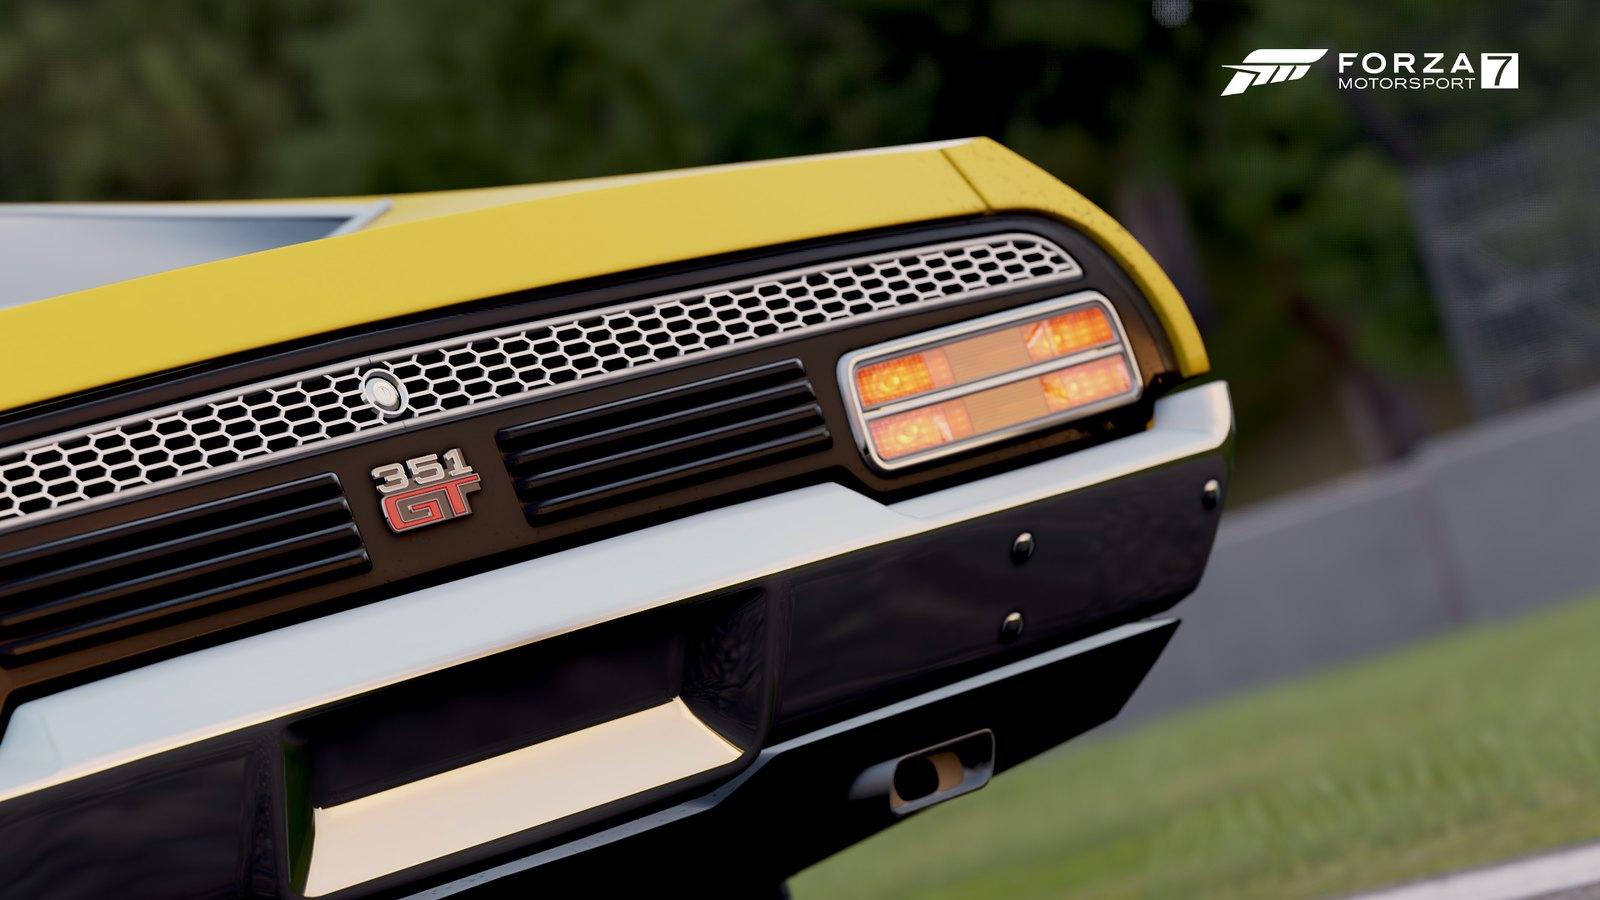 25705972297_2947a07aa0_h ForzaMotorsport.fr